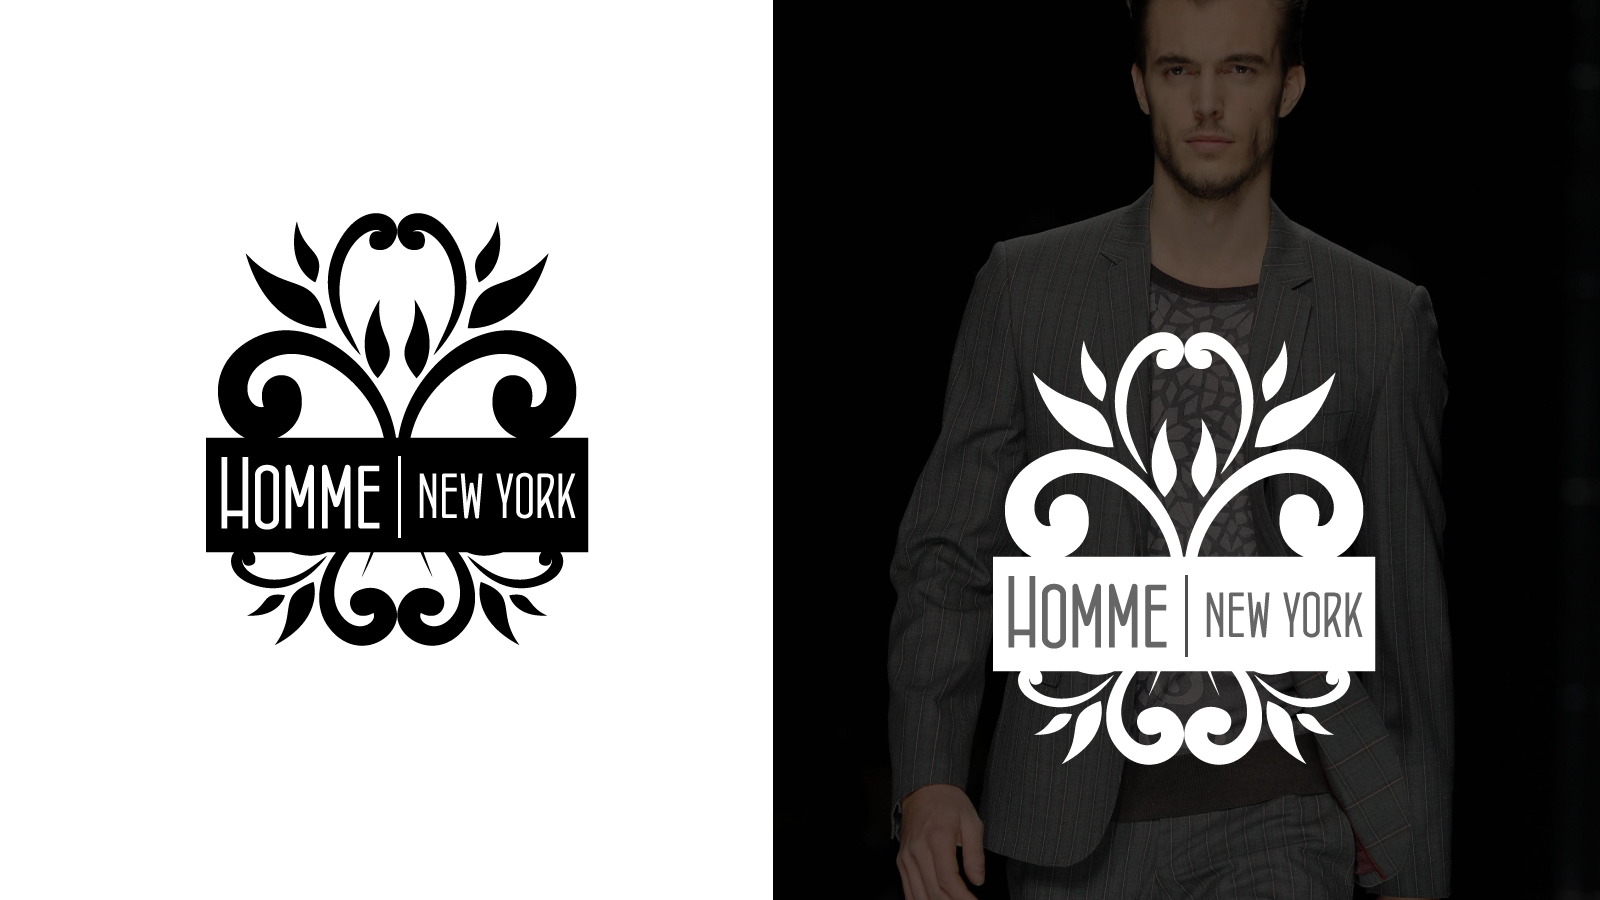 Logo Design by Jagdeep Singh - Entry No. 60 in the Logo Design Contest Artistic Logo Design for HOMME | NEW YORK.